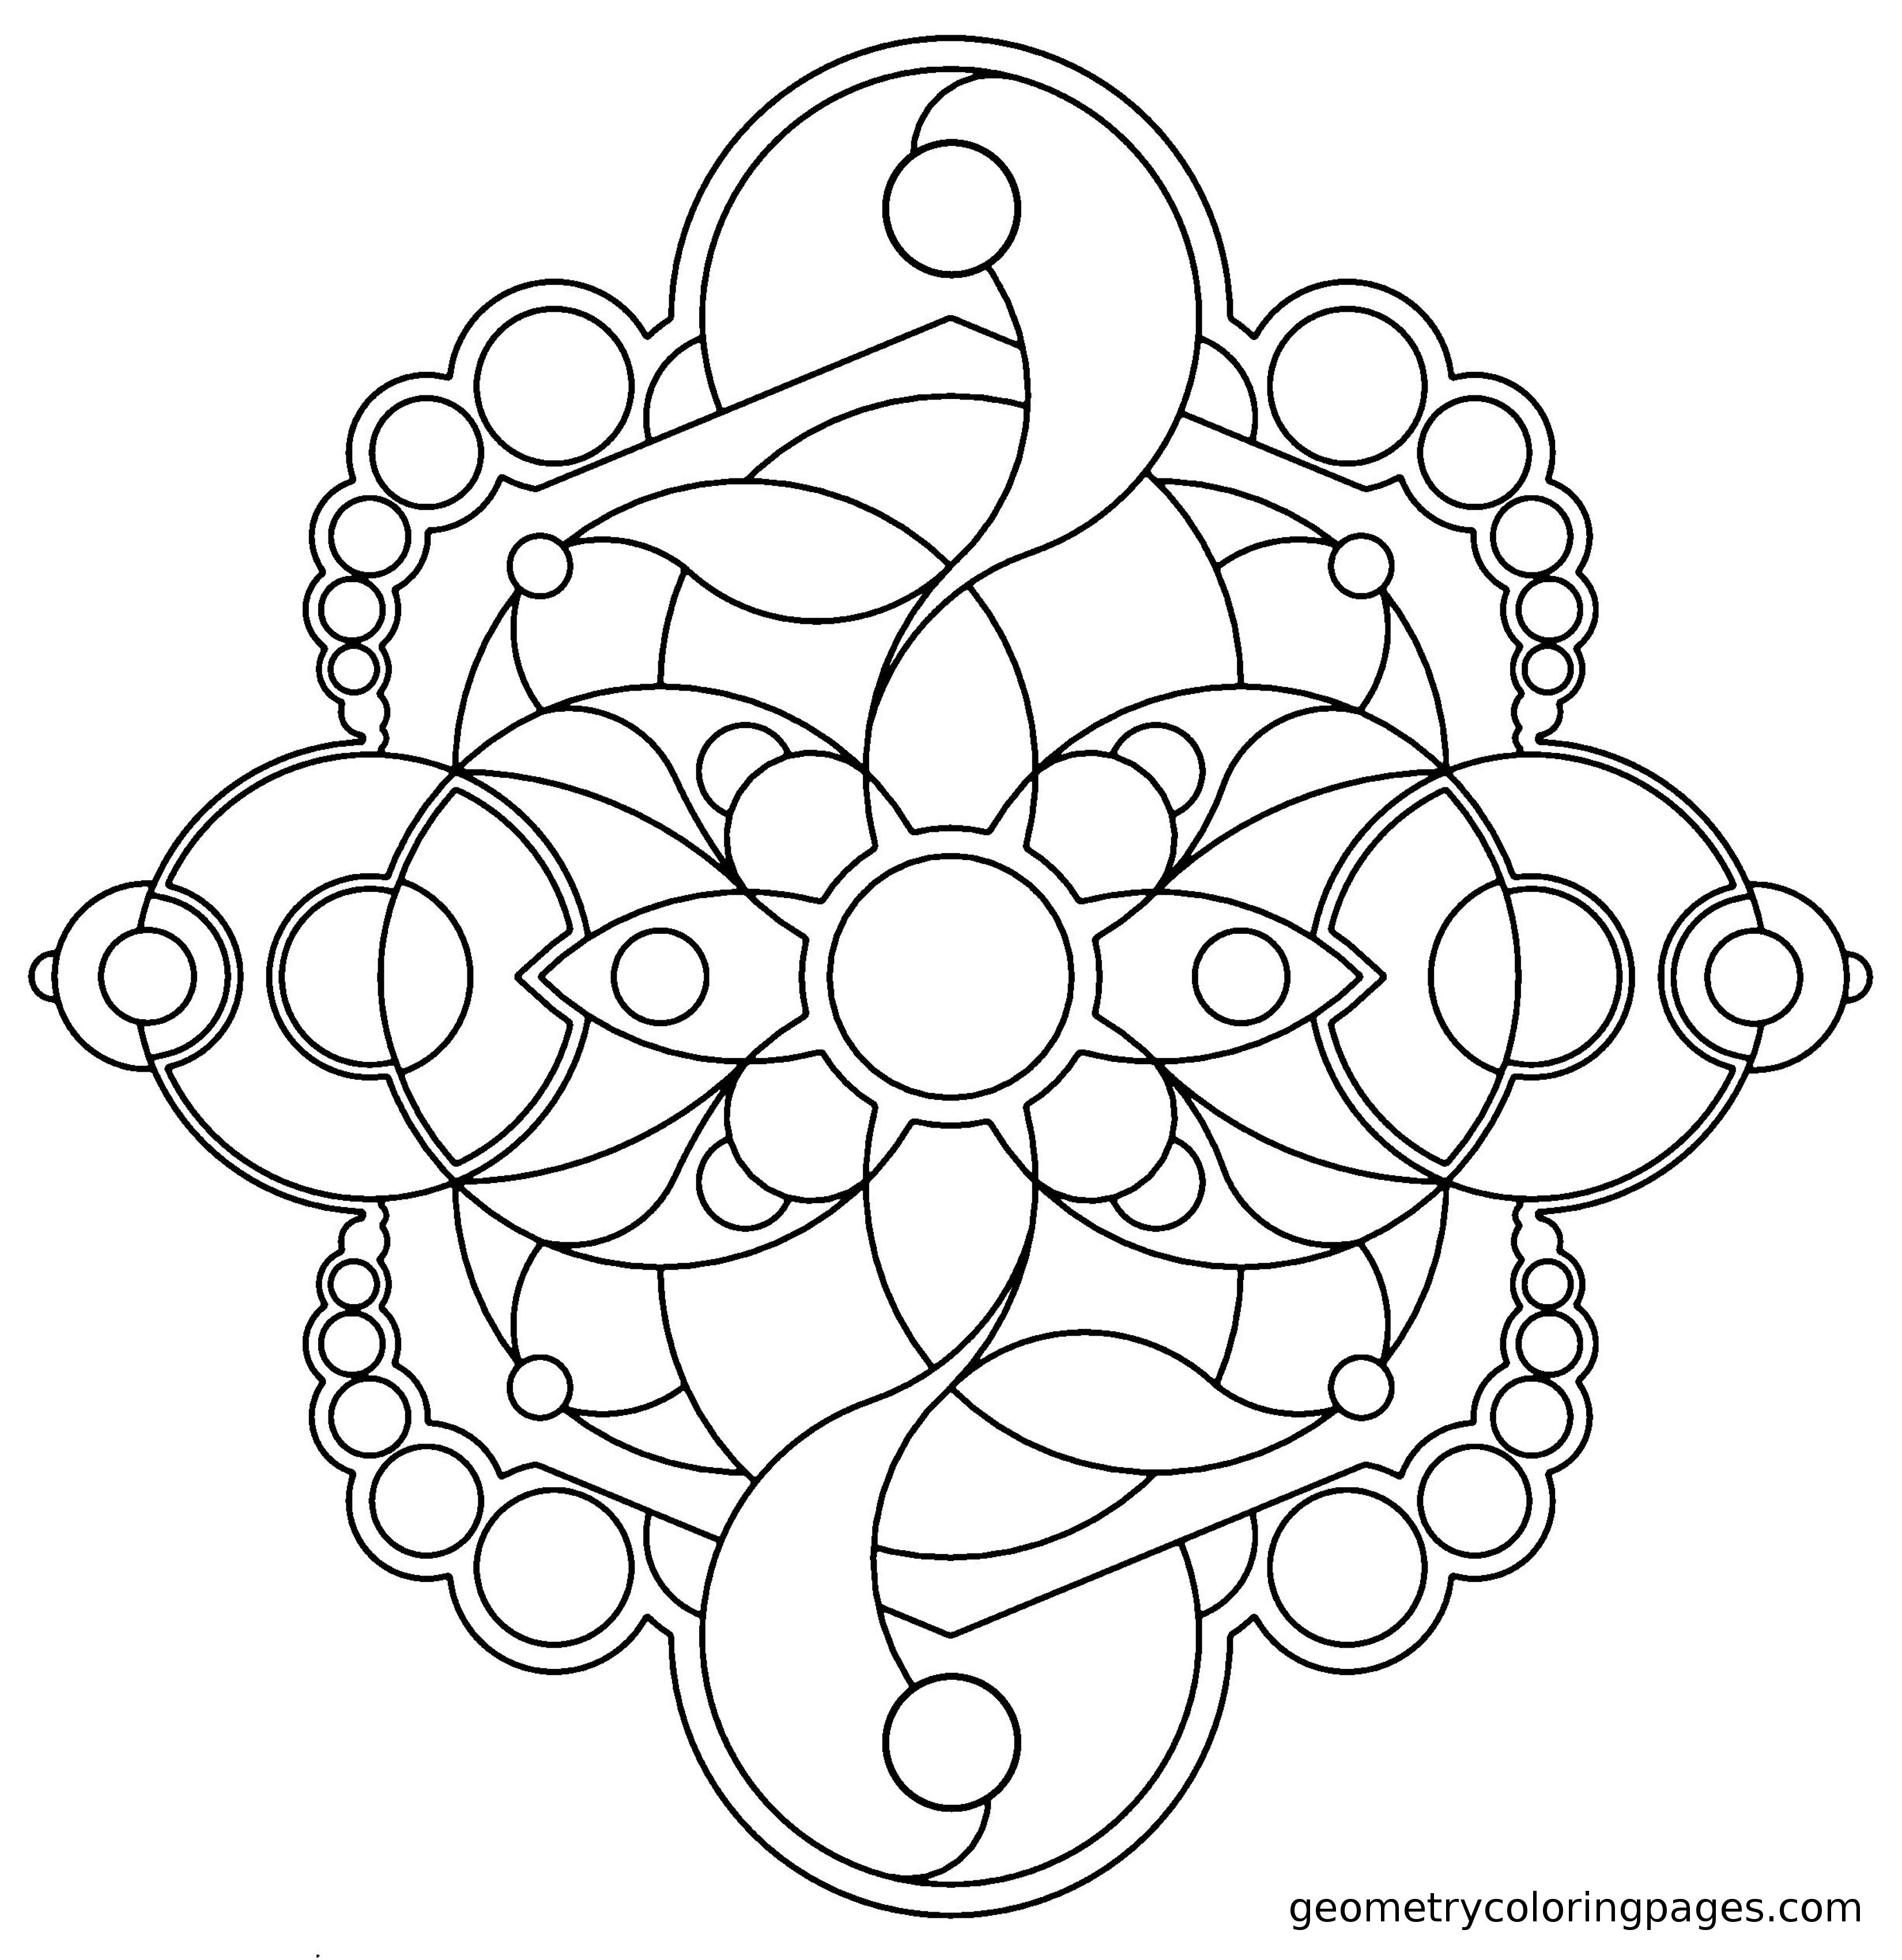 Spliced Geometry Coloring Pages Mandala Coloring Pages Mandala Coloring Coloring Pages